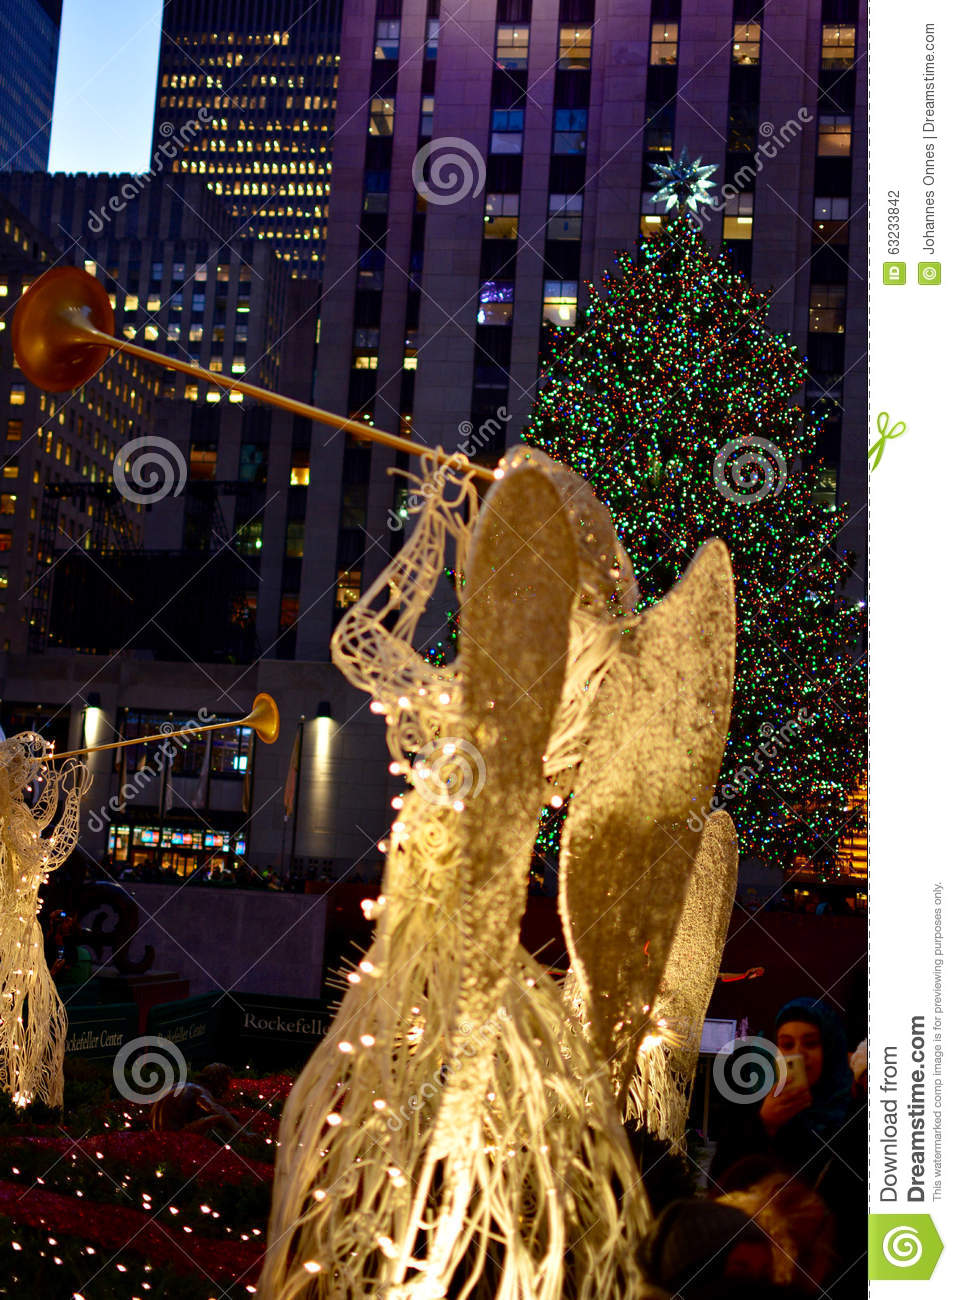 Christmas in new york rockefeller center angels editorial photography image 63233842 for Angel of the north christmas decoration